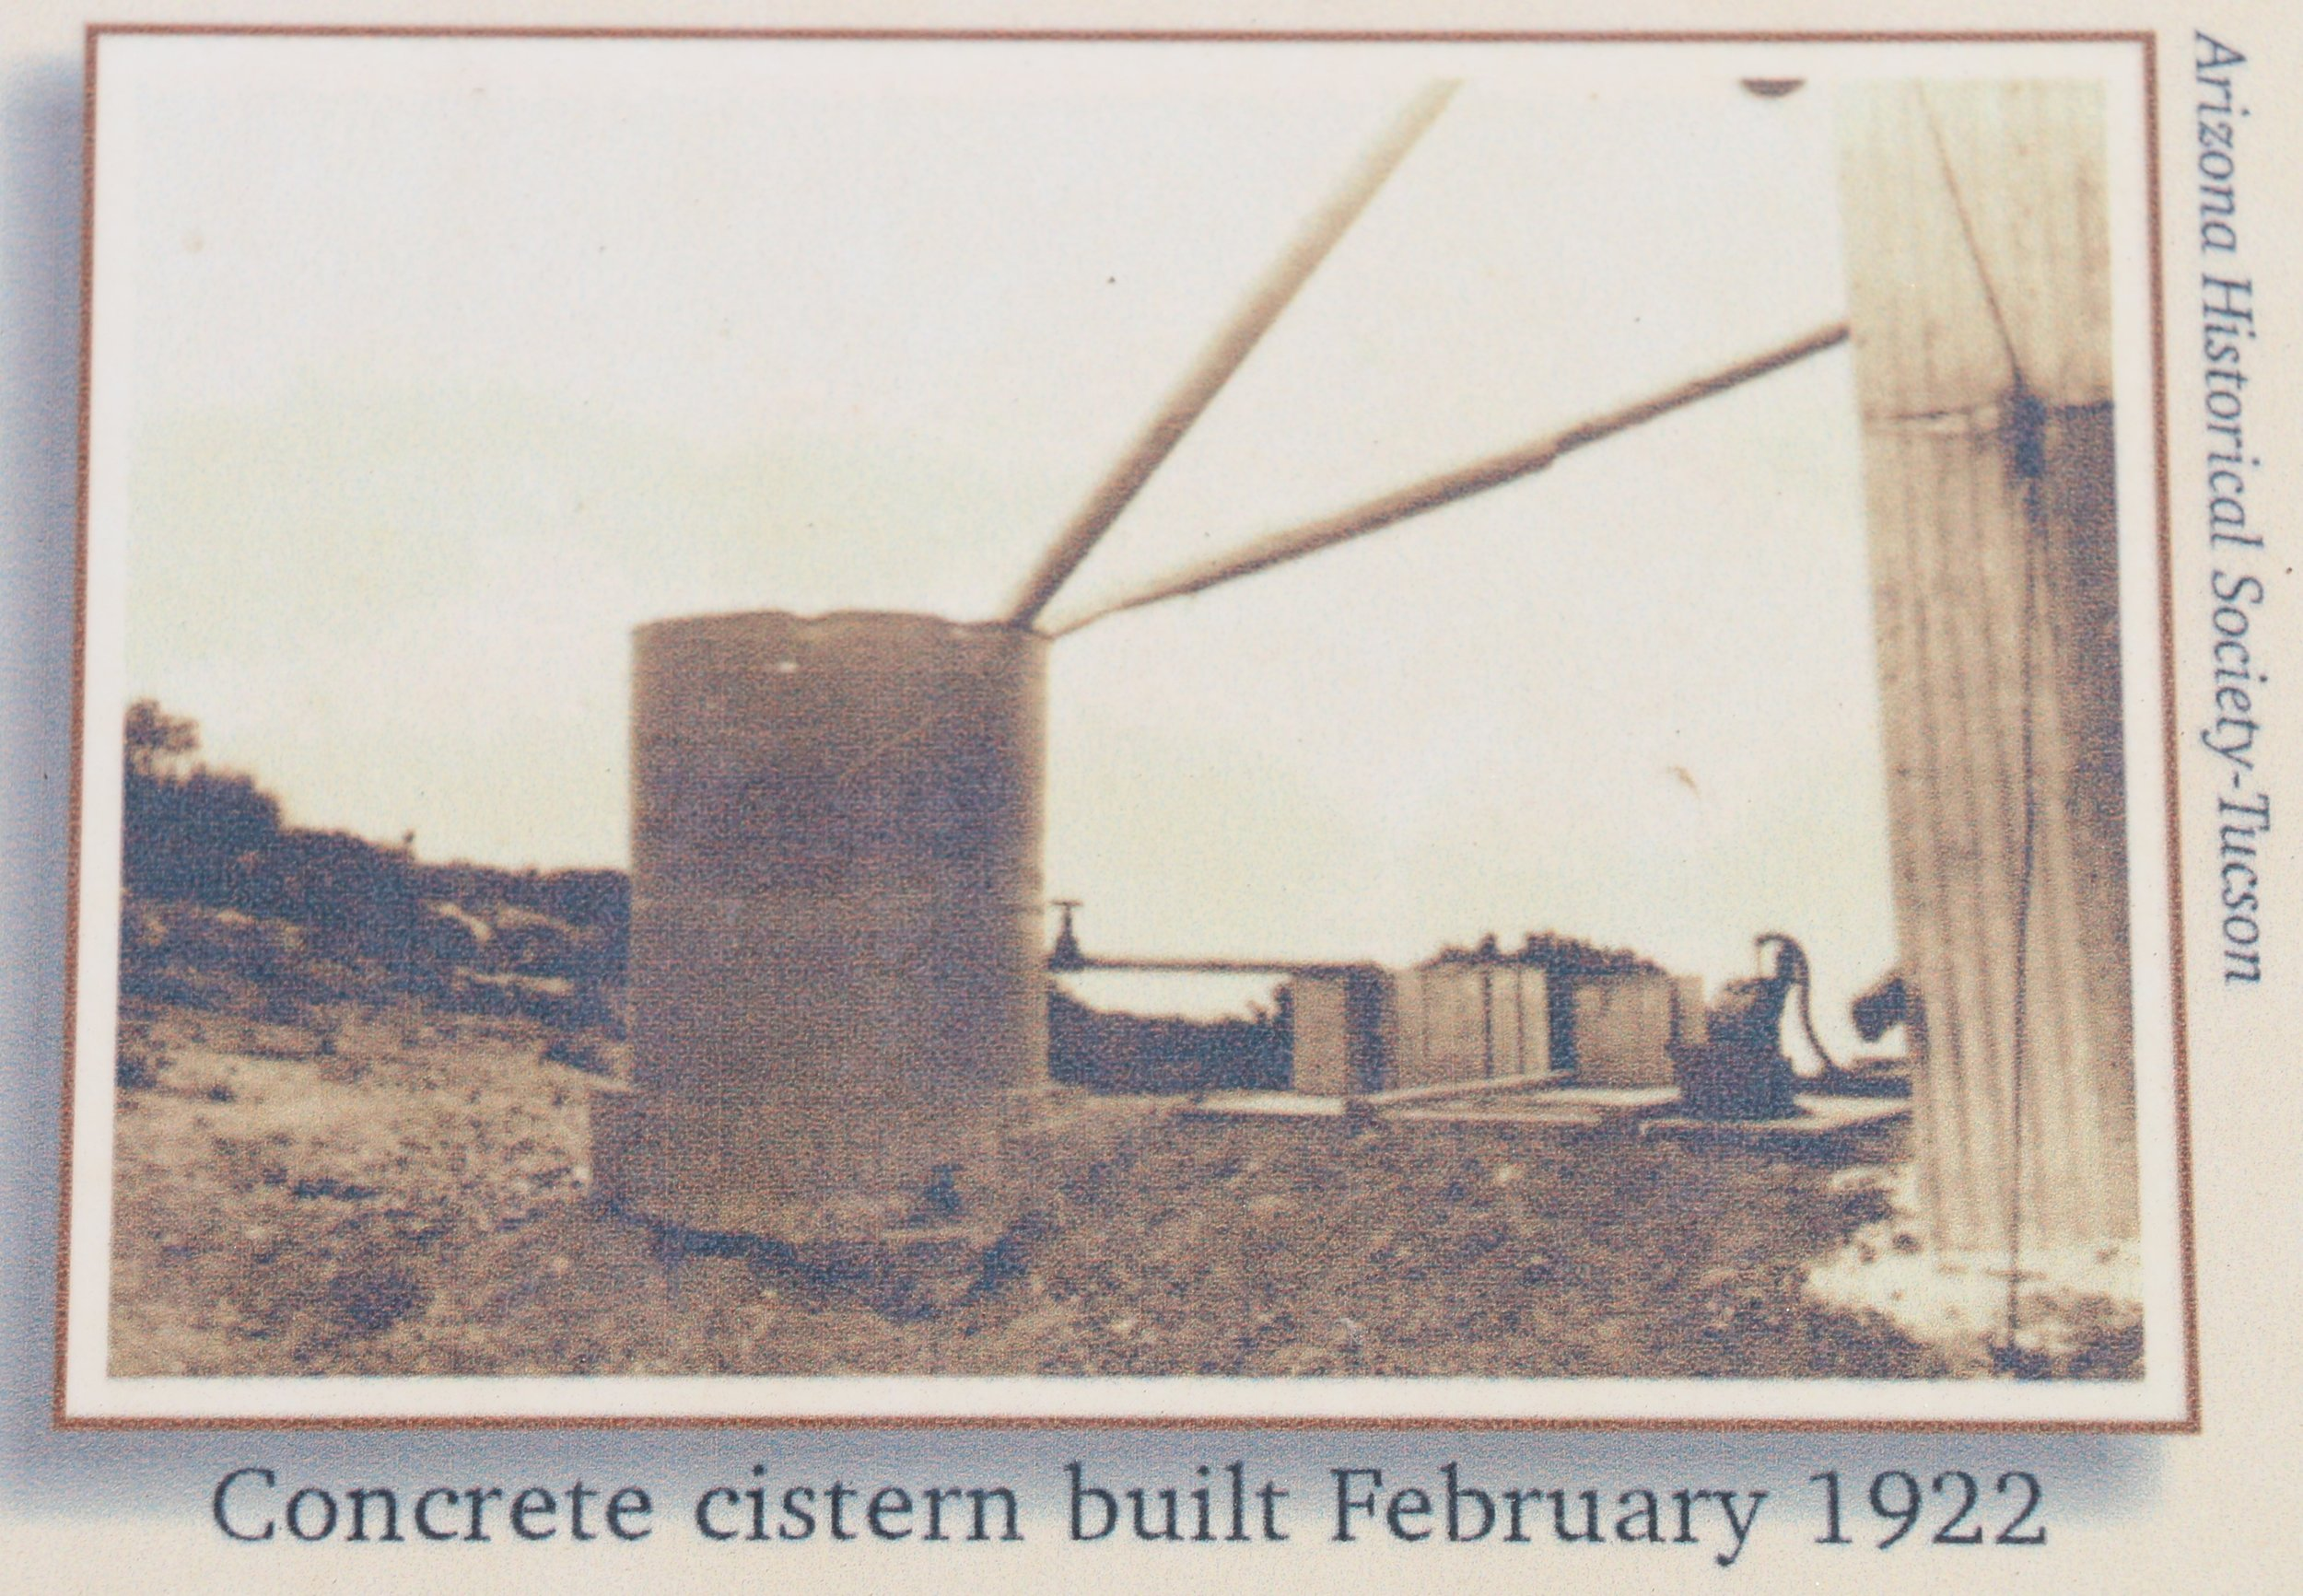 """Concrete cistern built Feb. 1922"" from Arizona Historical Society - Tucson."